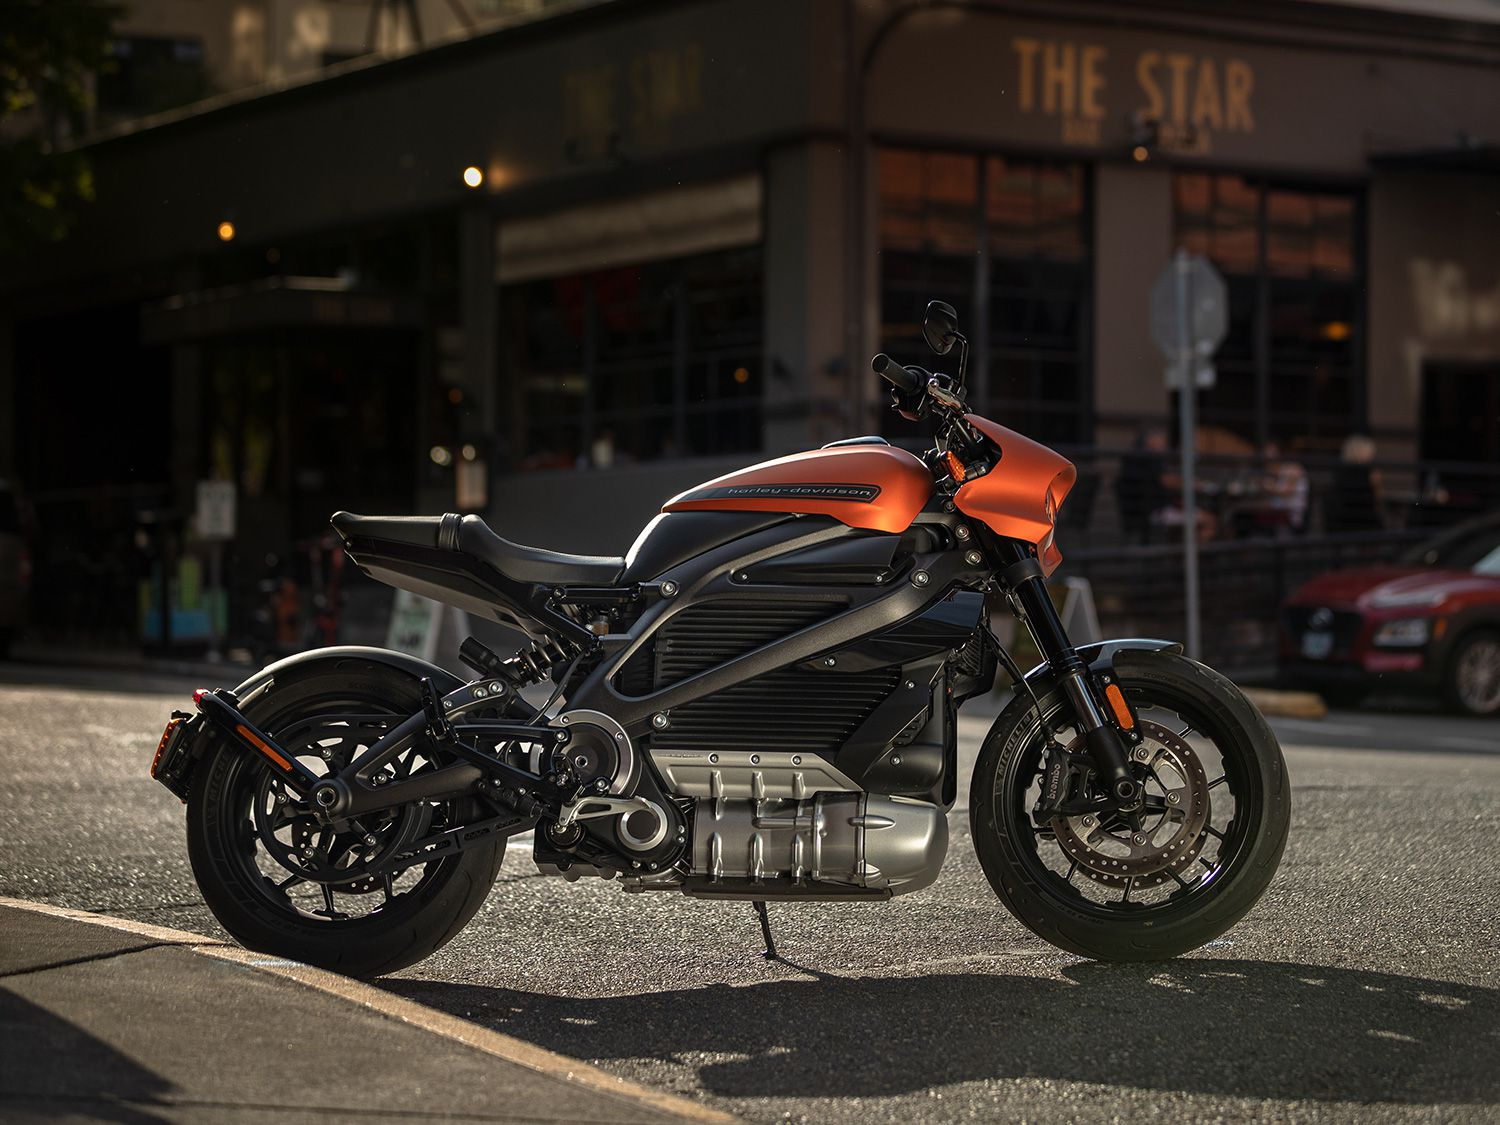 Pleasing 2020 Harley Davidson Livewire First Ride Cycle World Caraccident5 Cool Chair Designs And Ideas Caraccident5Info